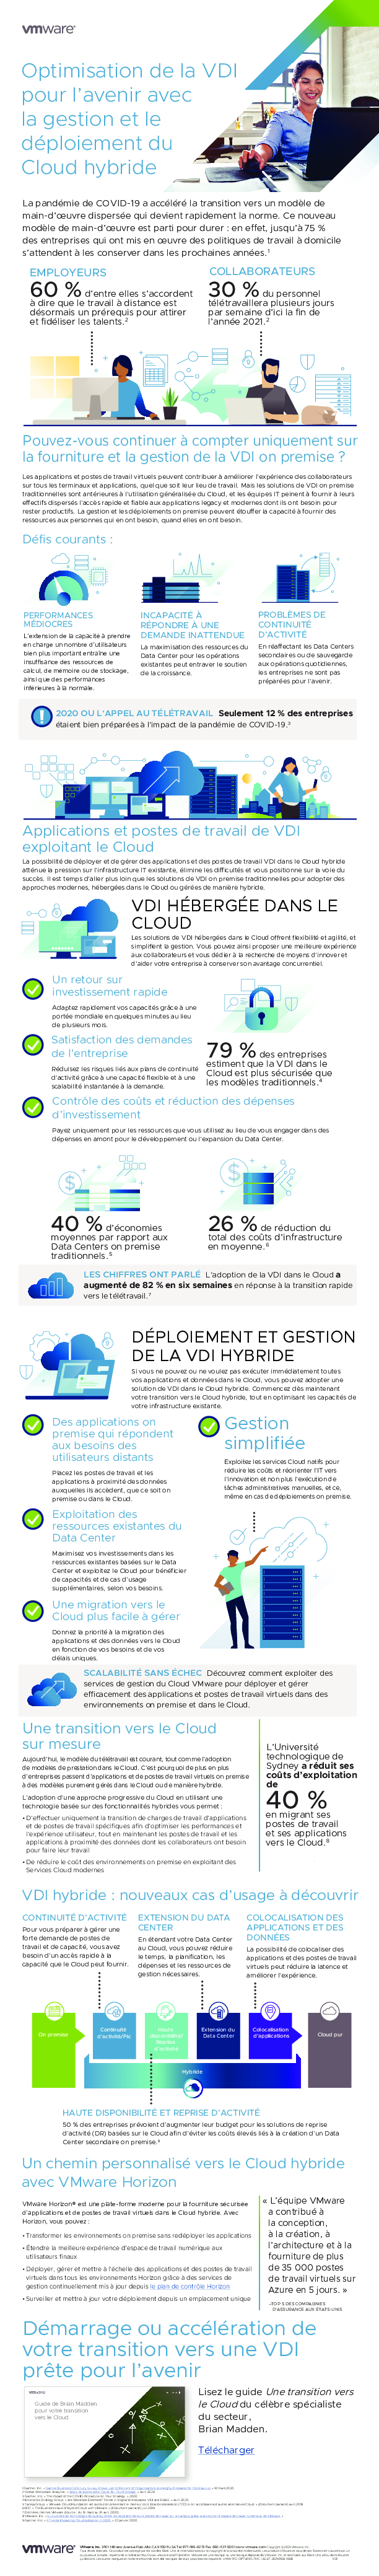 Cropped thumb original optimize vdi for the future with hybrid cloud management and deployment fr c3934d5dfacf4532